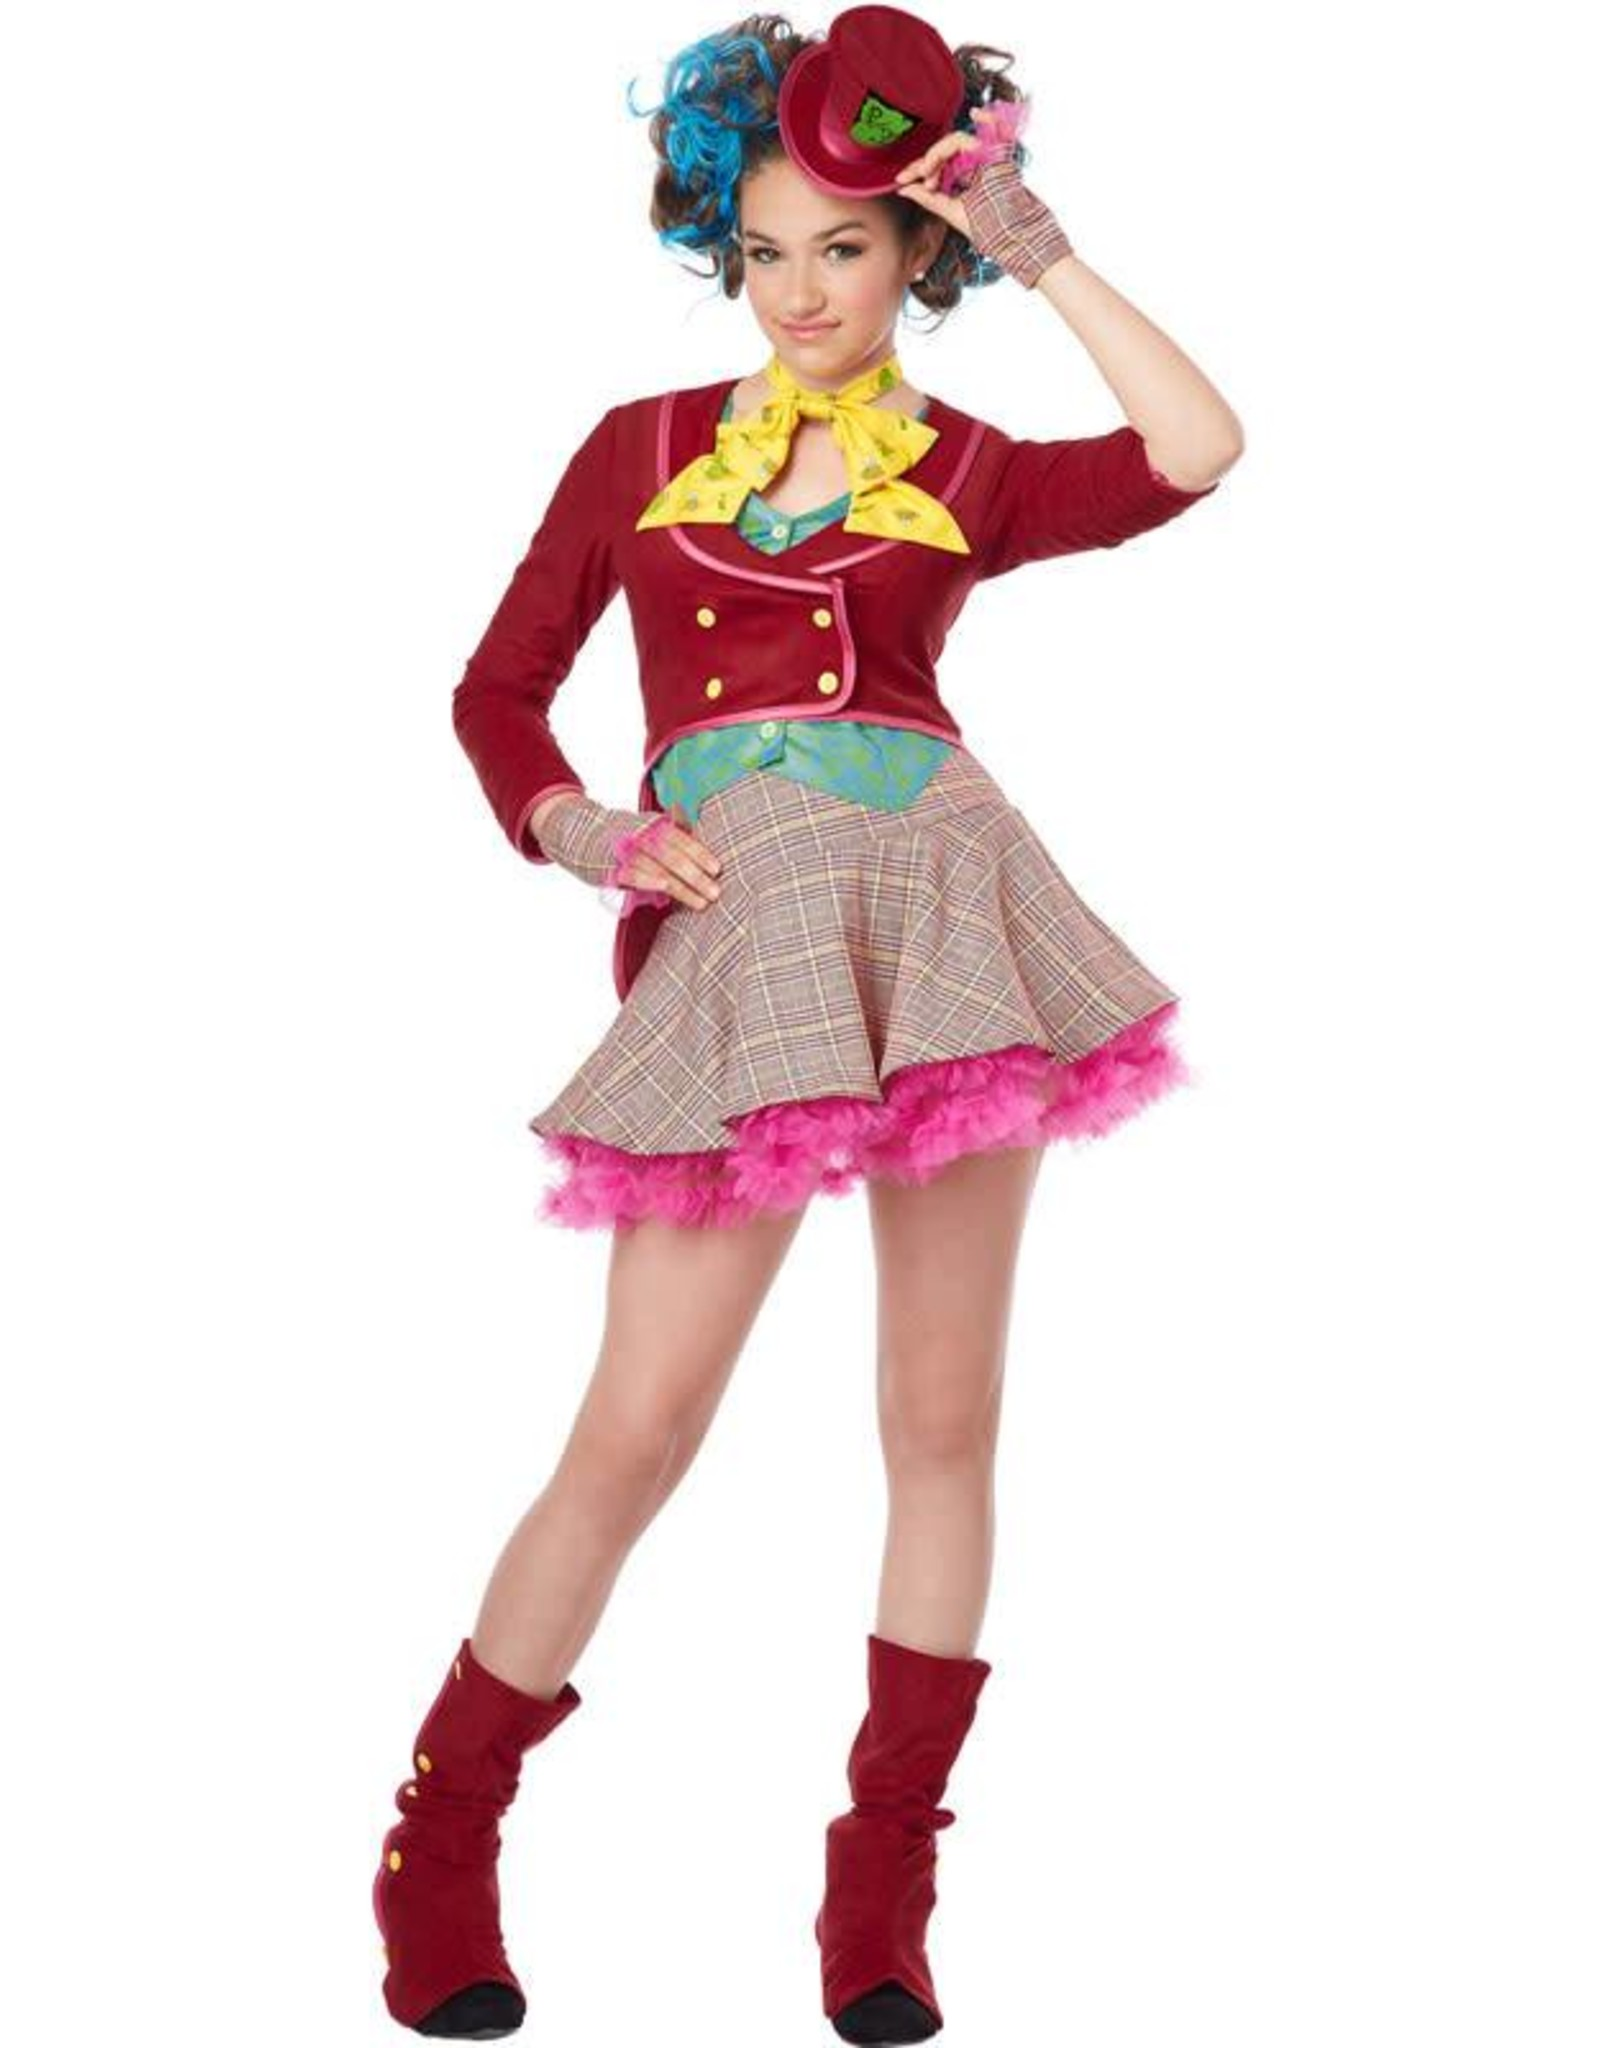 California Costume Mad as a Hatter